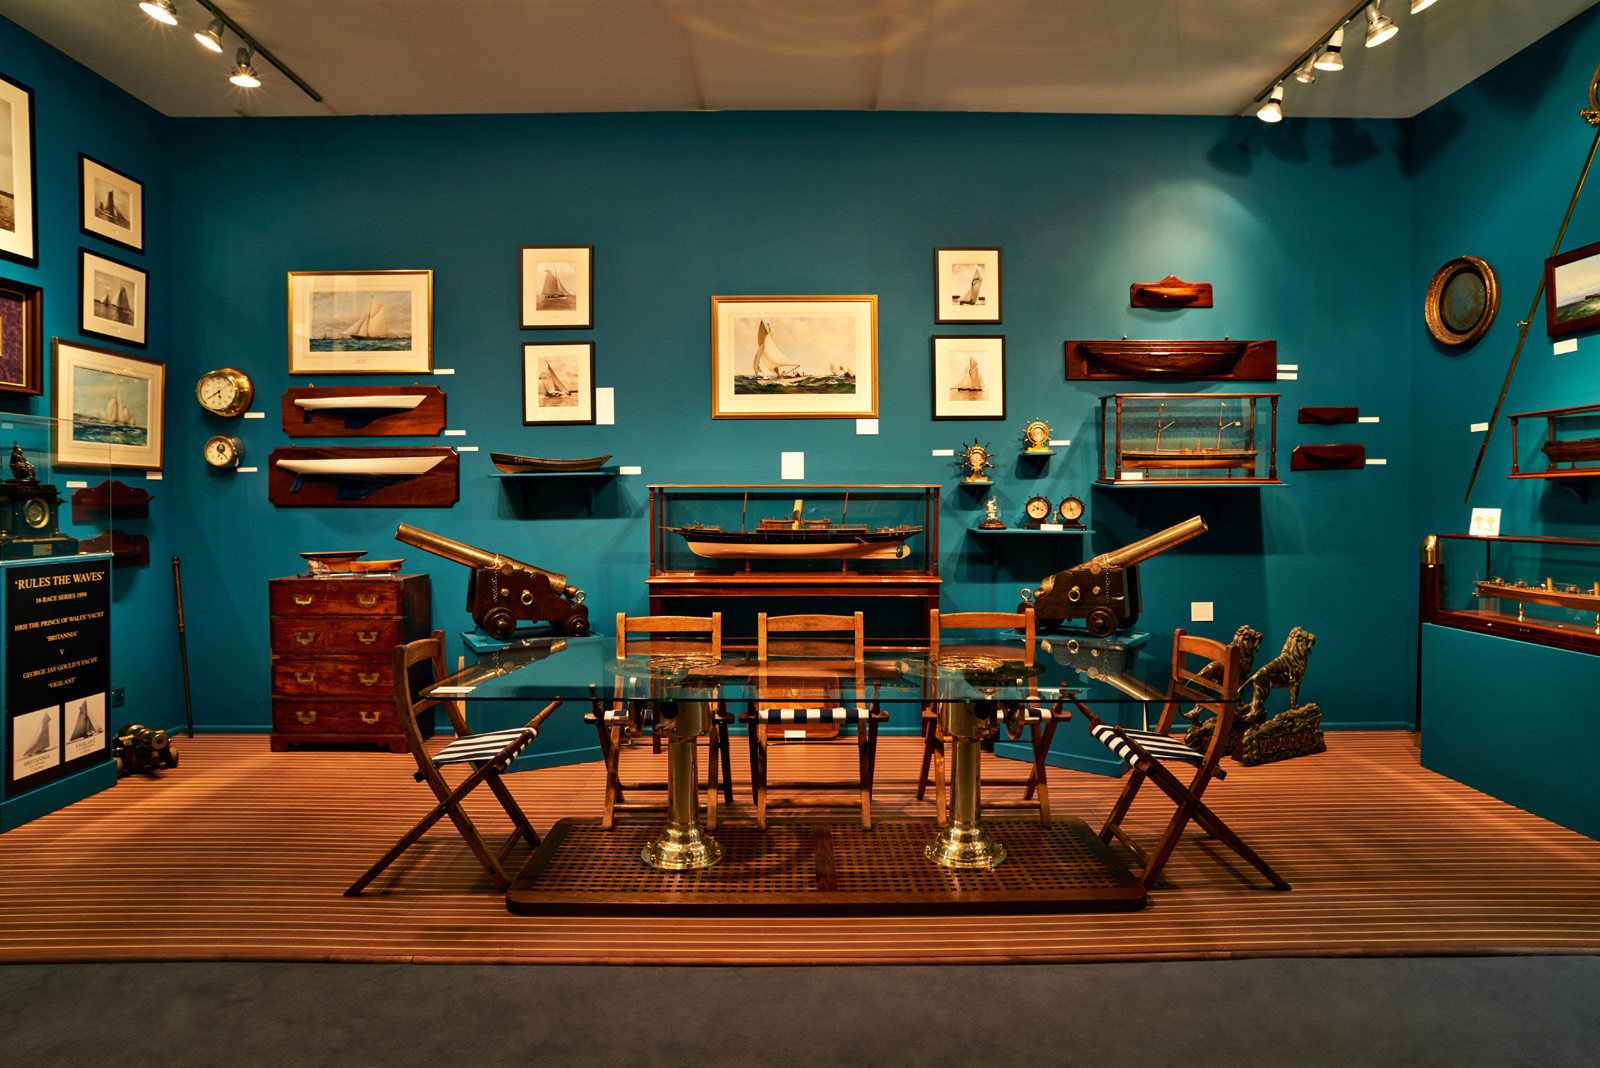 The 2016 LAPADA Arts And Antiques Fair To Open In London 4